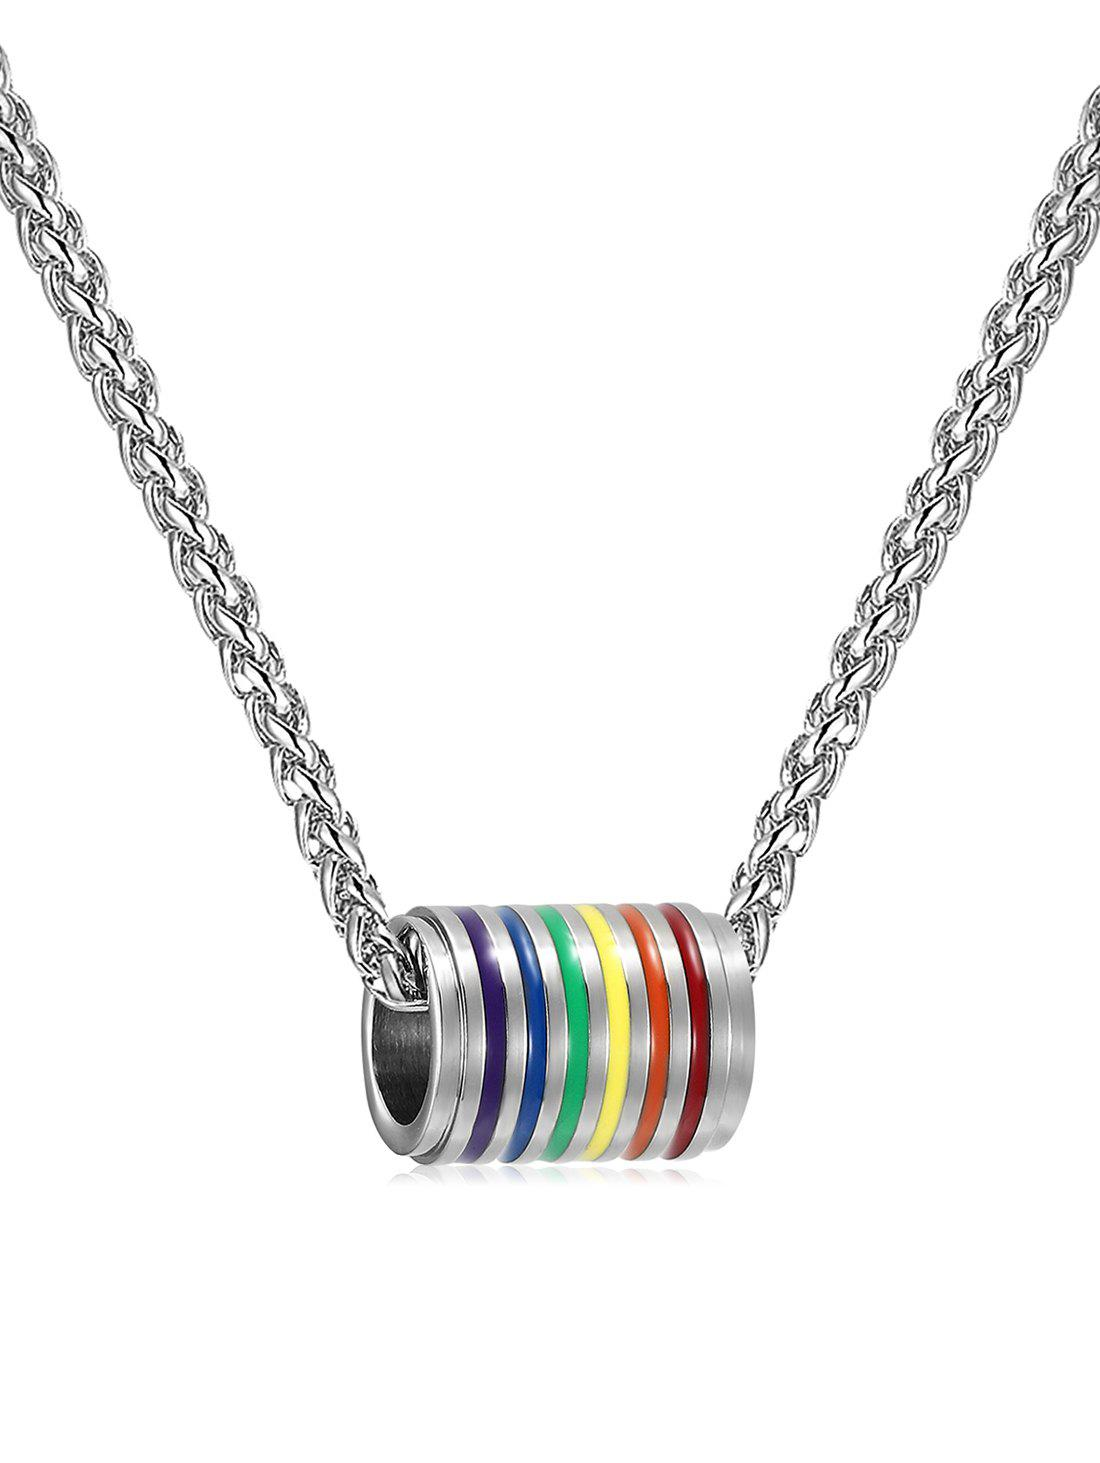 New Colored Cylinder Alloy Pendant Necklace